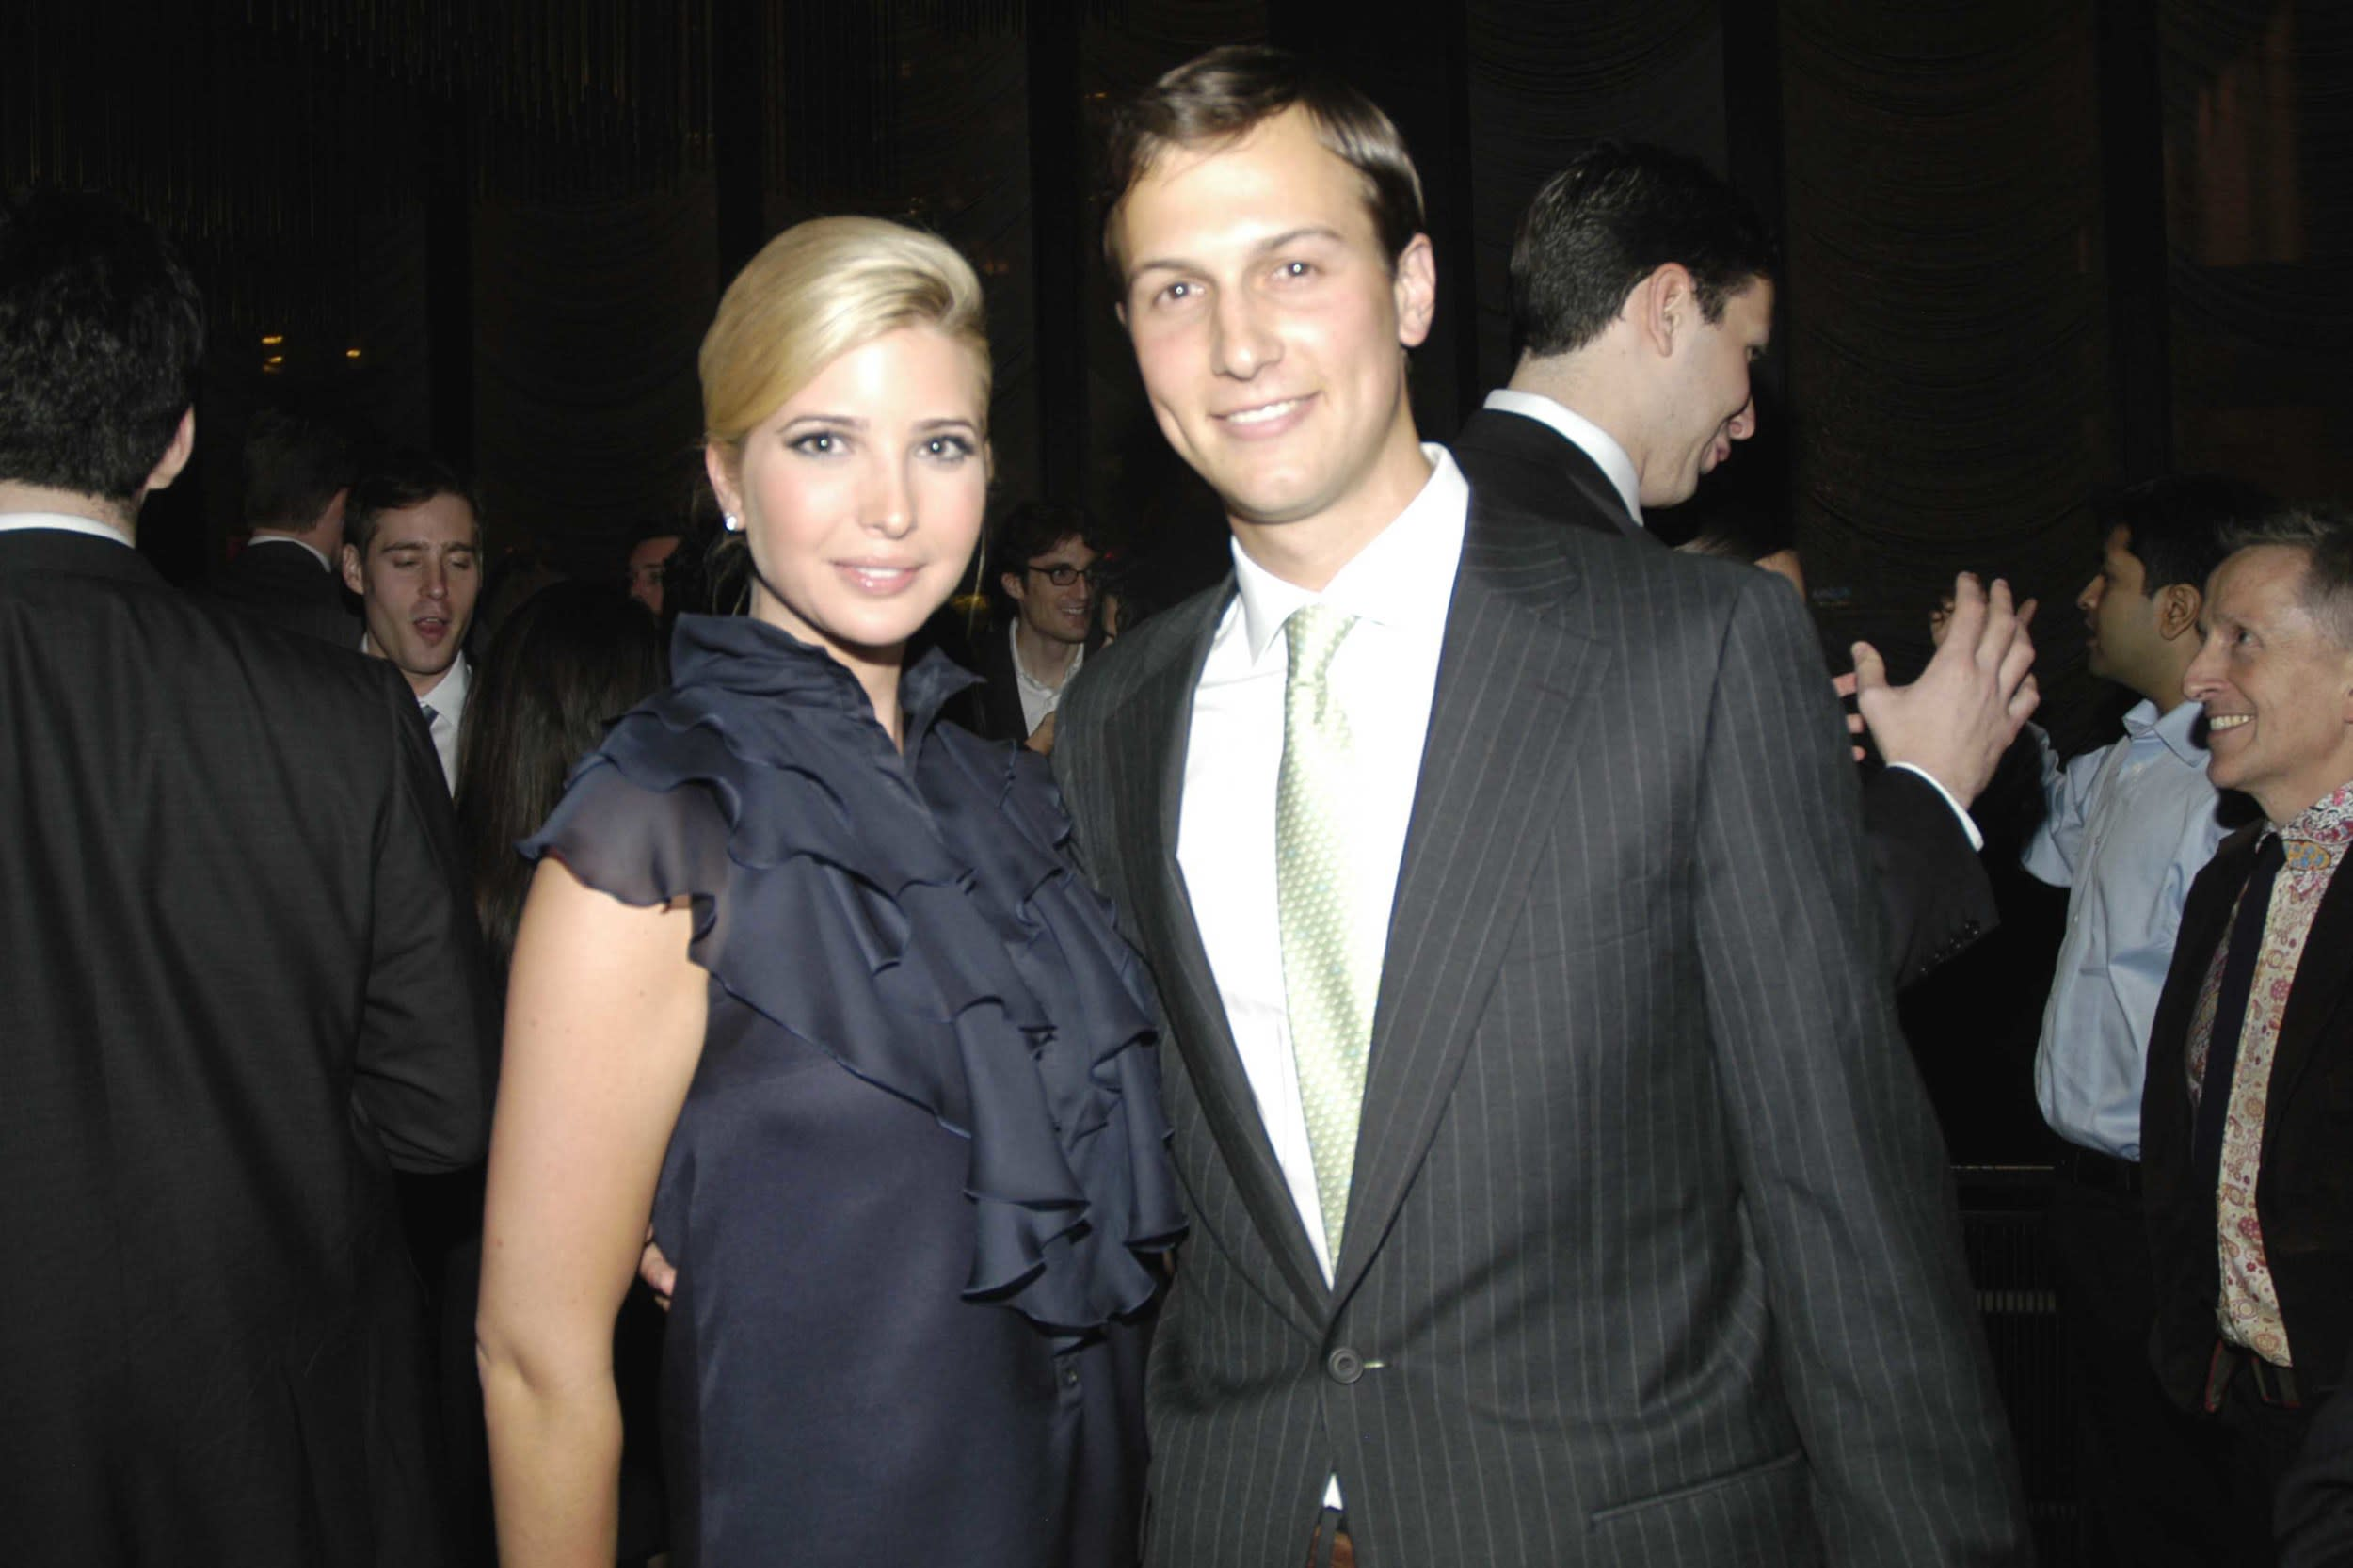 NEW YORK CITY, NY - APRIL 18: Ivanka Trump and Jared Kushner attend Jared Kushner and Peter Kaplan Present the Relaunch of the New York Observer Website at Four Seasons Restaurant on April 18, 2007 in New York City. (Photo by PAUL LAURIE/Patrick McMullan via Getty Images)